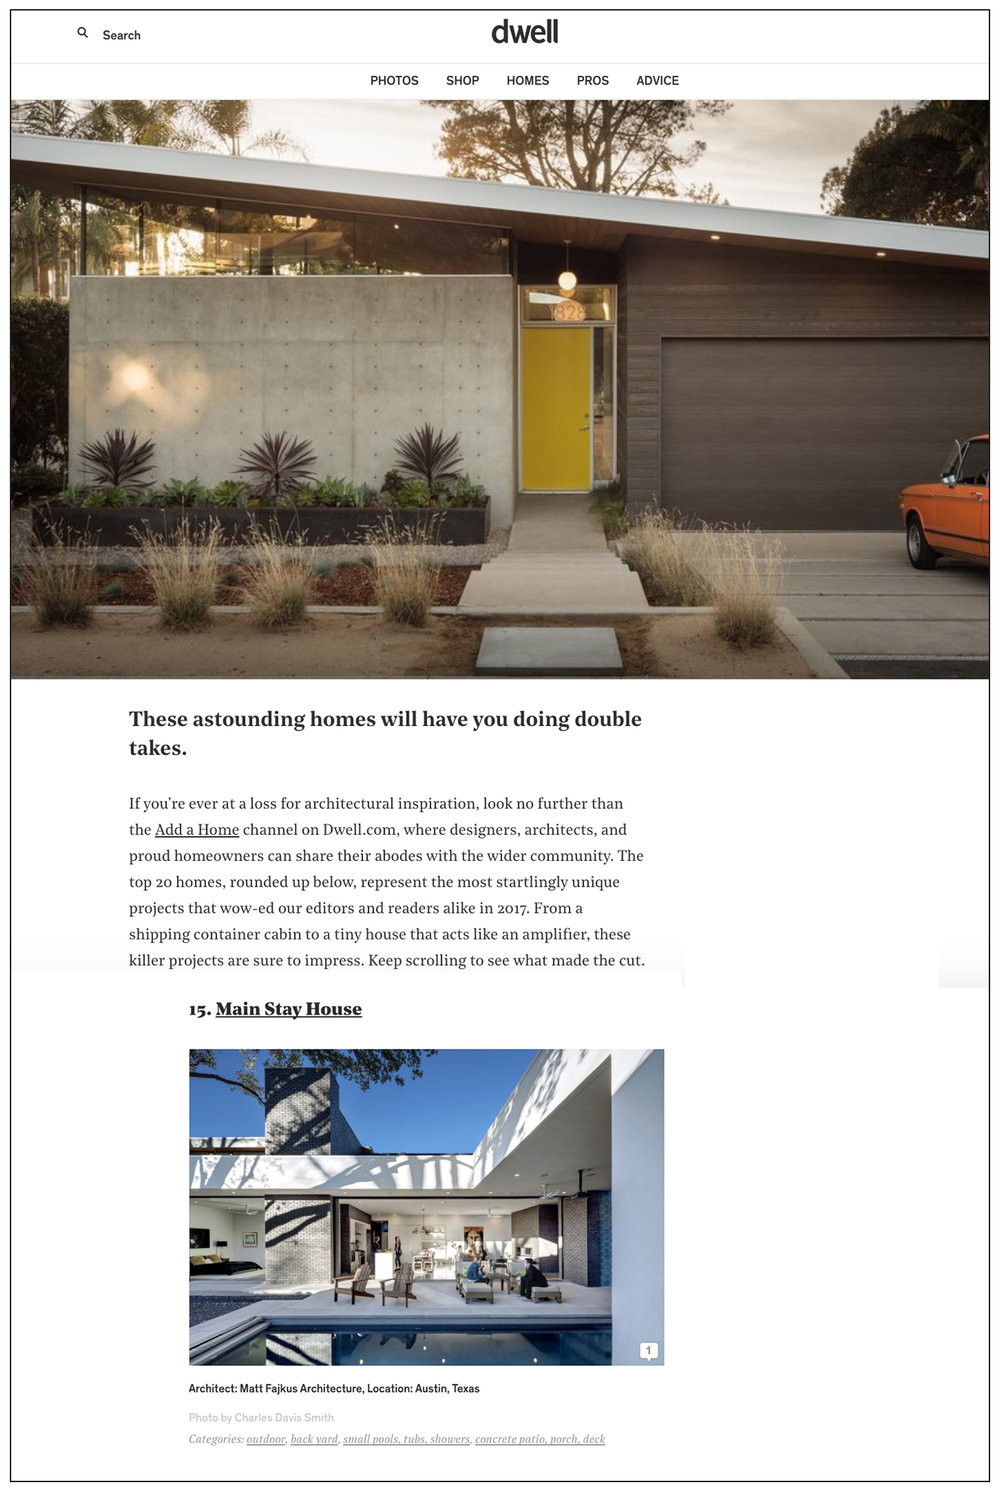 2017_1229 Dwell_Main Stay House_with border.jpg